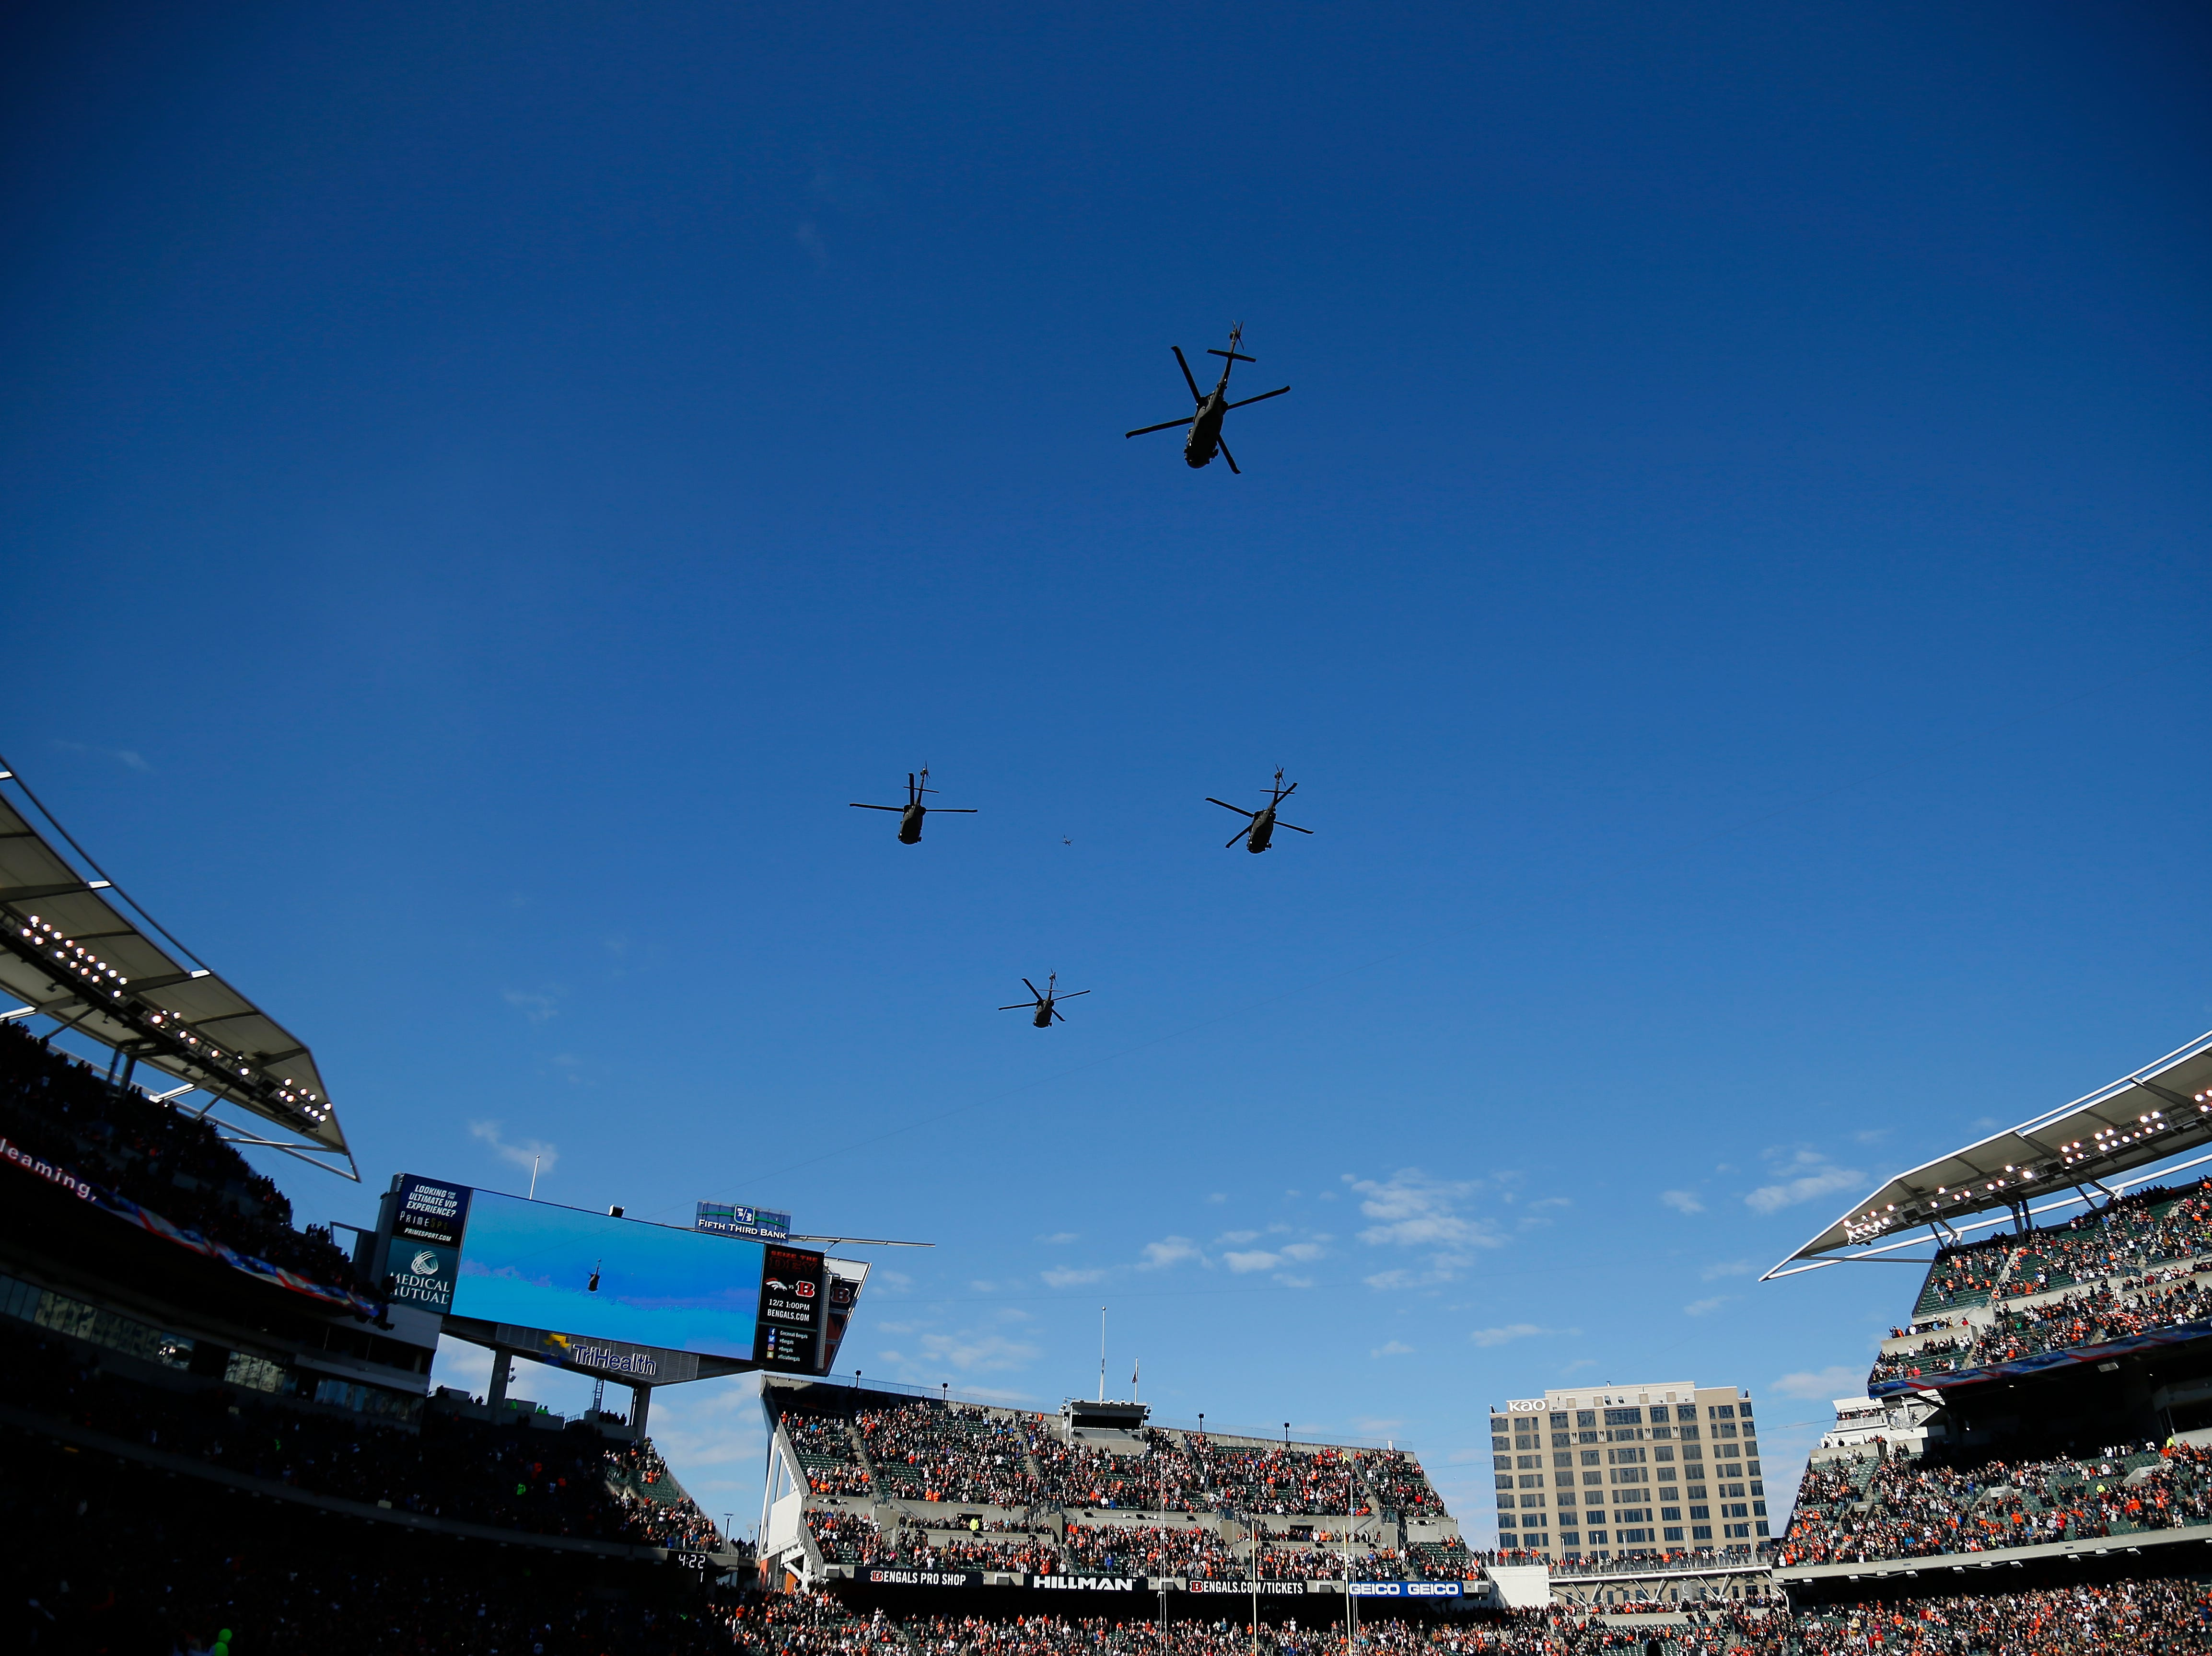 Four military helicopters fly over the stadium before the first quarter of the NFL Week 10 game between the Cincinnati Bengals and the New Orleans Saints at Paul Brown Stadium in downtown Cincinnati on Sunday, Nov. 11, 2018. The Saints led 35-7 at halftime.